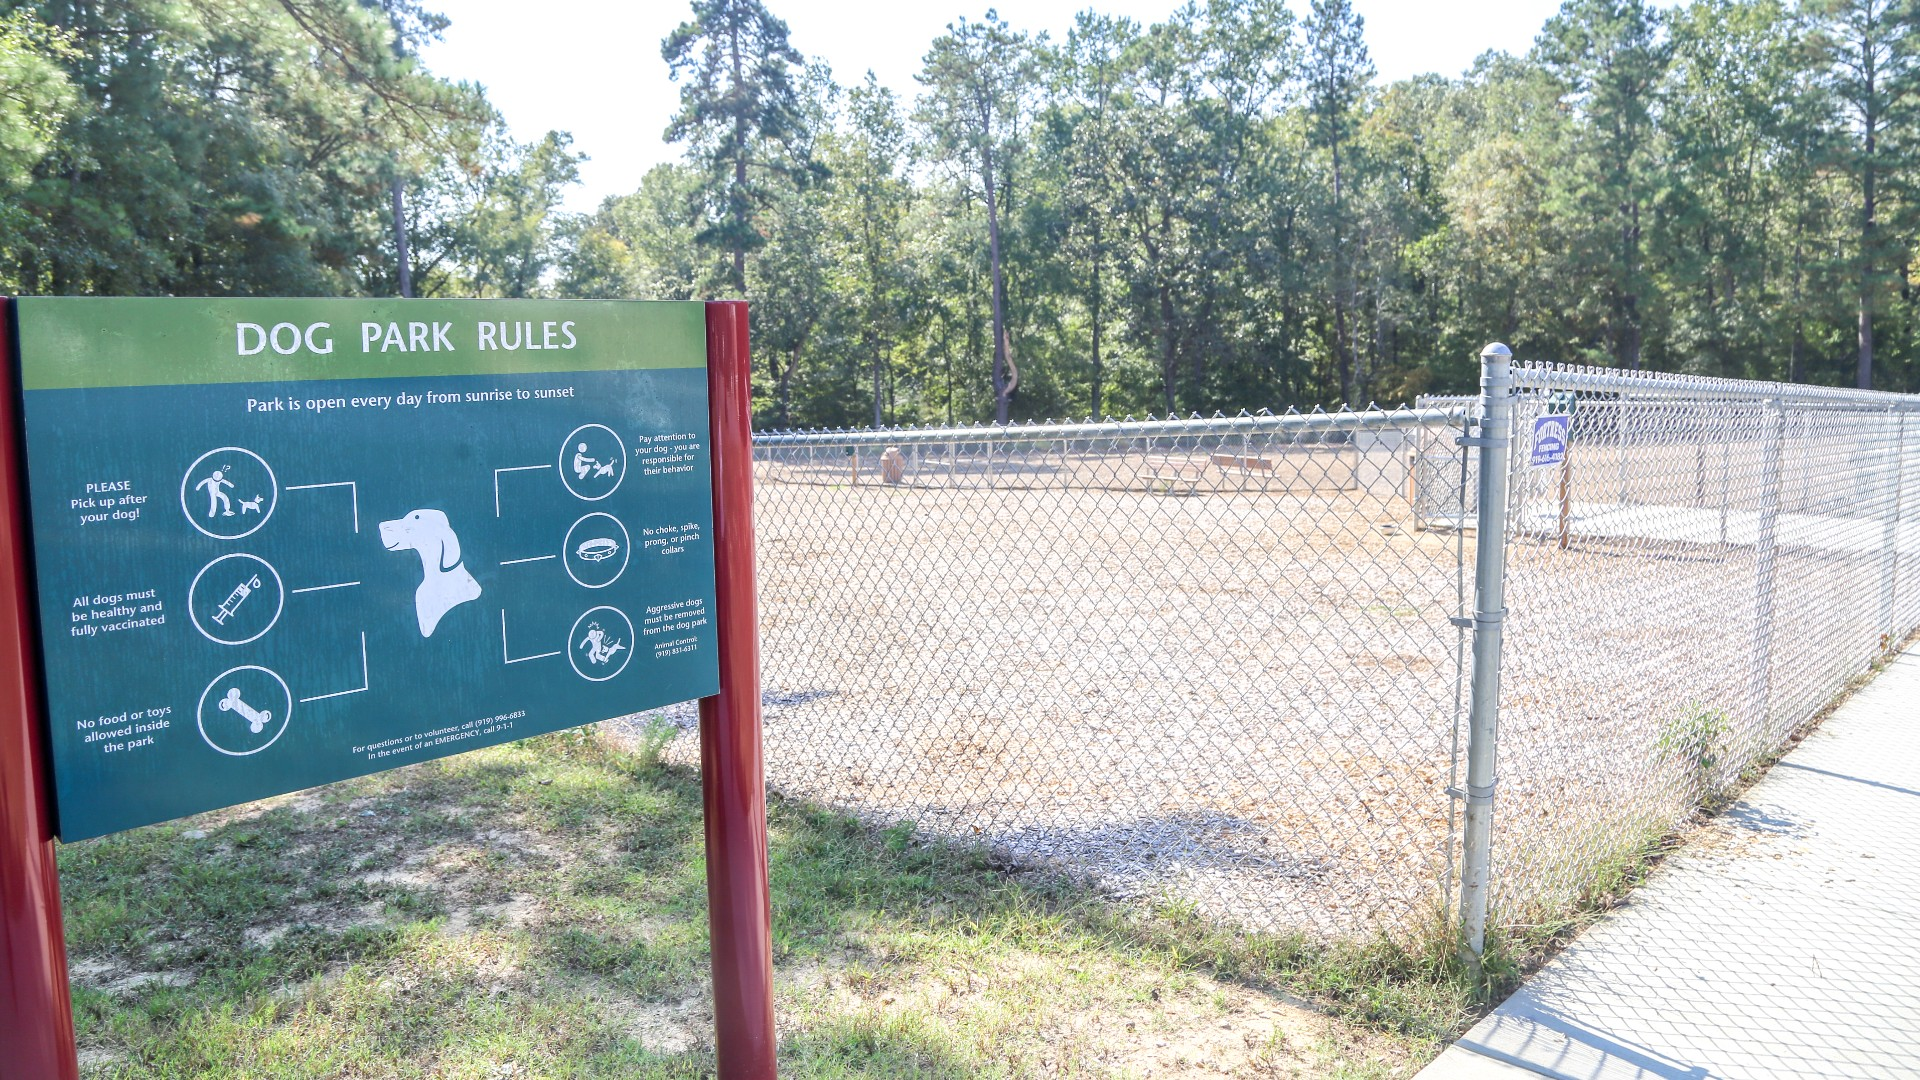 An outdoor, fenced in dog park at Buffaloe Road next to a sign with dog park rules